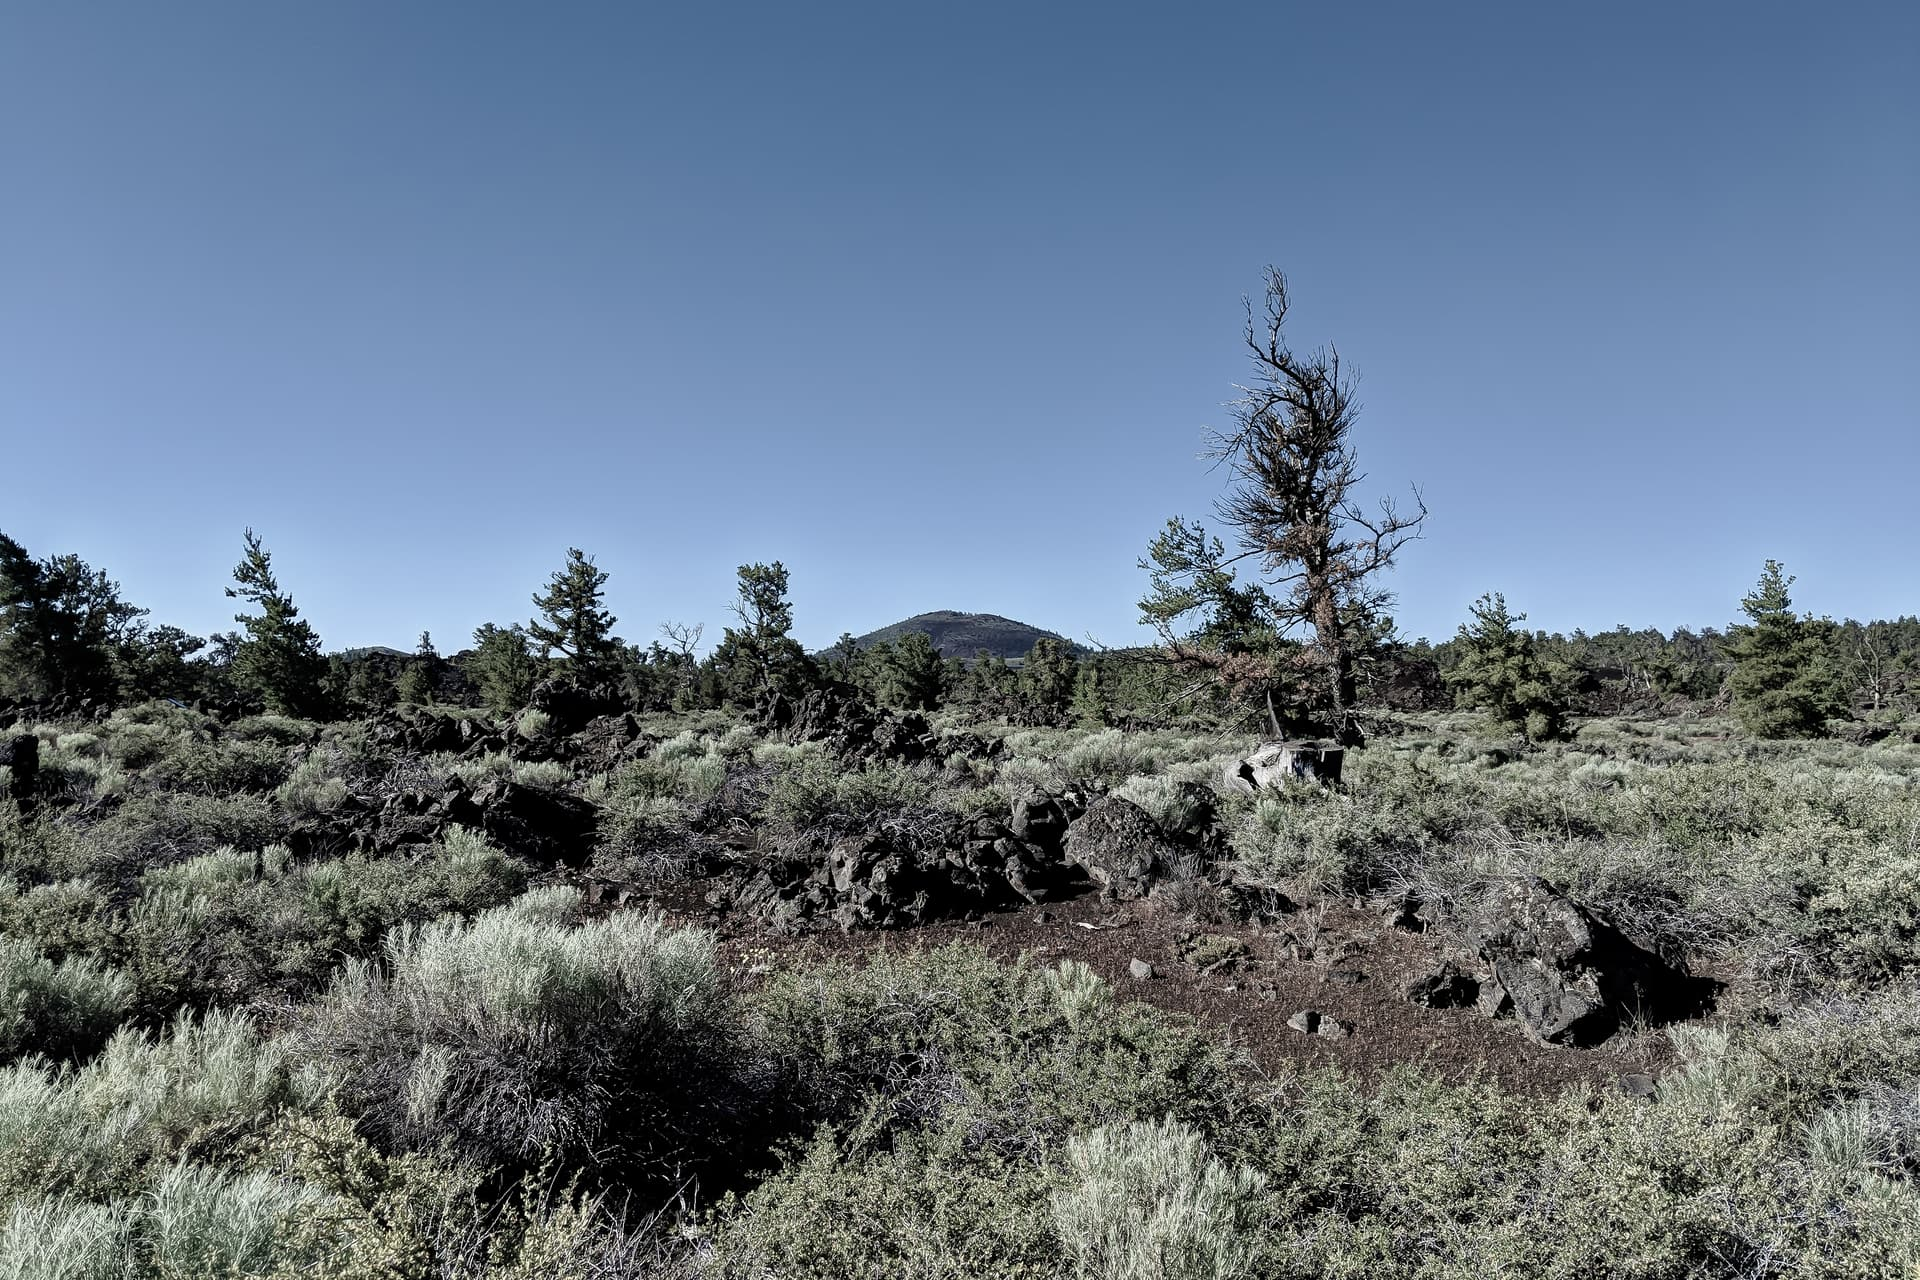 A field of desert scrub growing on an even plain of black volcanic cinders. The scrub is periodically punctuated by dark, twisted pine trees. In the distance, a scrub-covered cinder cone.